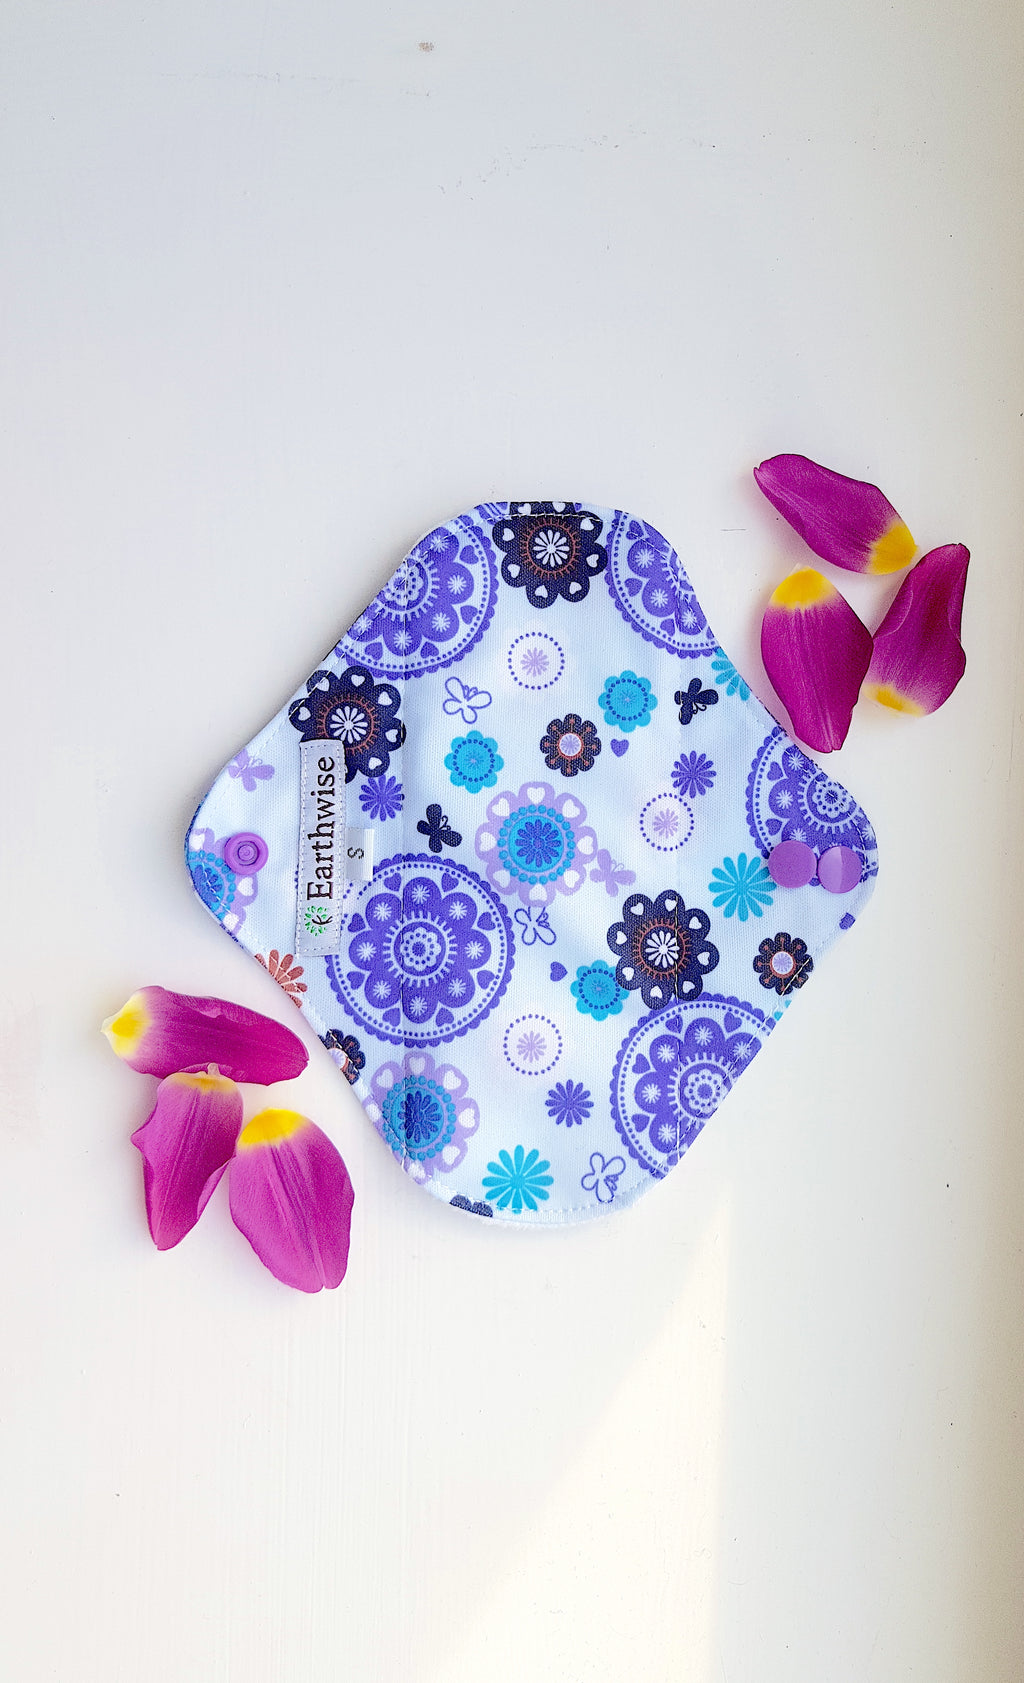 Reusable 'Earthwise' Sanitary Pads: Kaleidoscope (S/M/L) - Zero Waste Shop, Reusable Sanitary Pad - Eco + Plant-Based Lifestyle, G.0 - Generation Zero Uk, G.0 - G.0